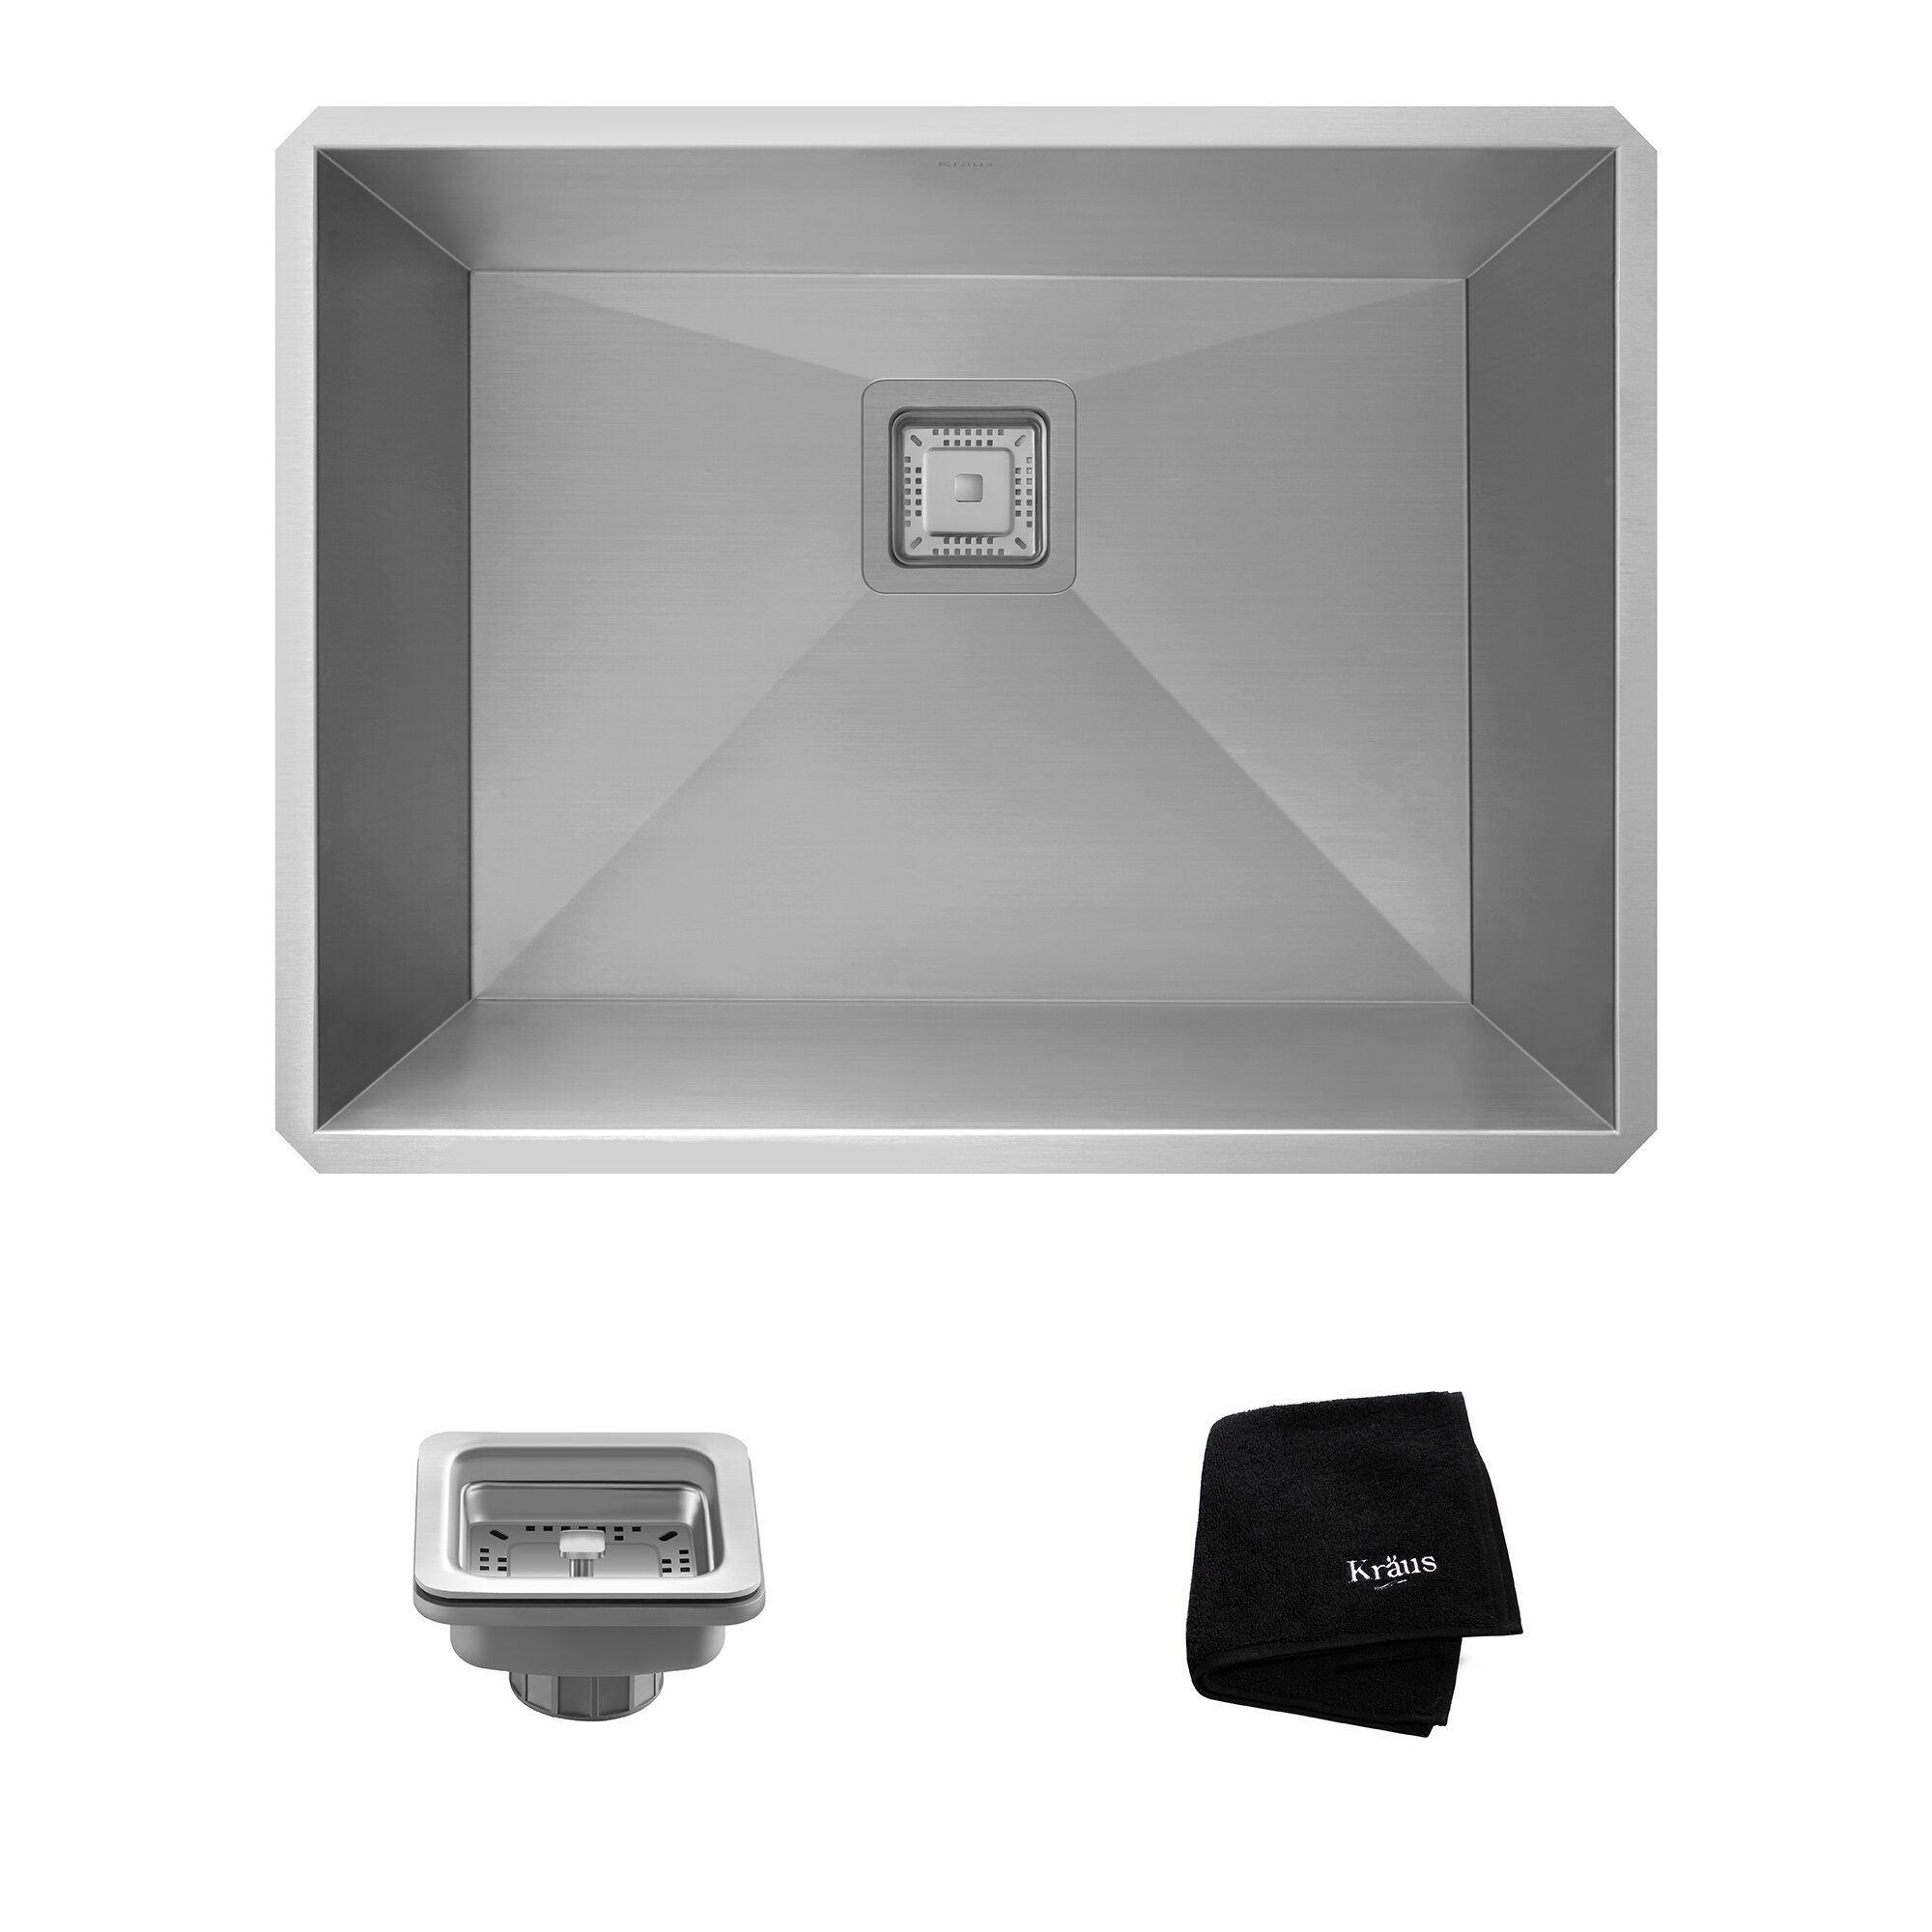 Laundry Undermount Sink : ... Undermount Single Bowl Stainless Steel Laundry and Utility Sink by